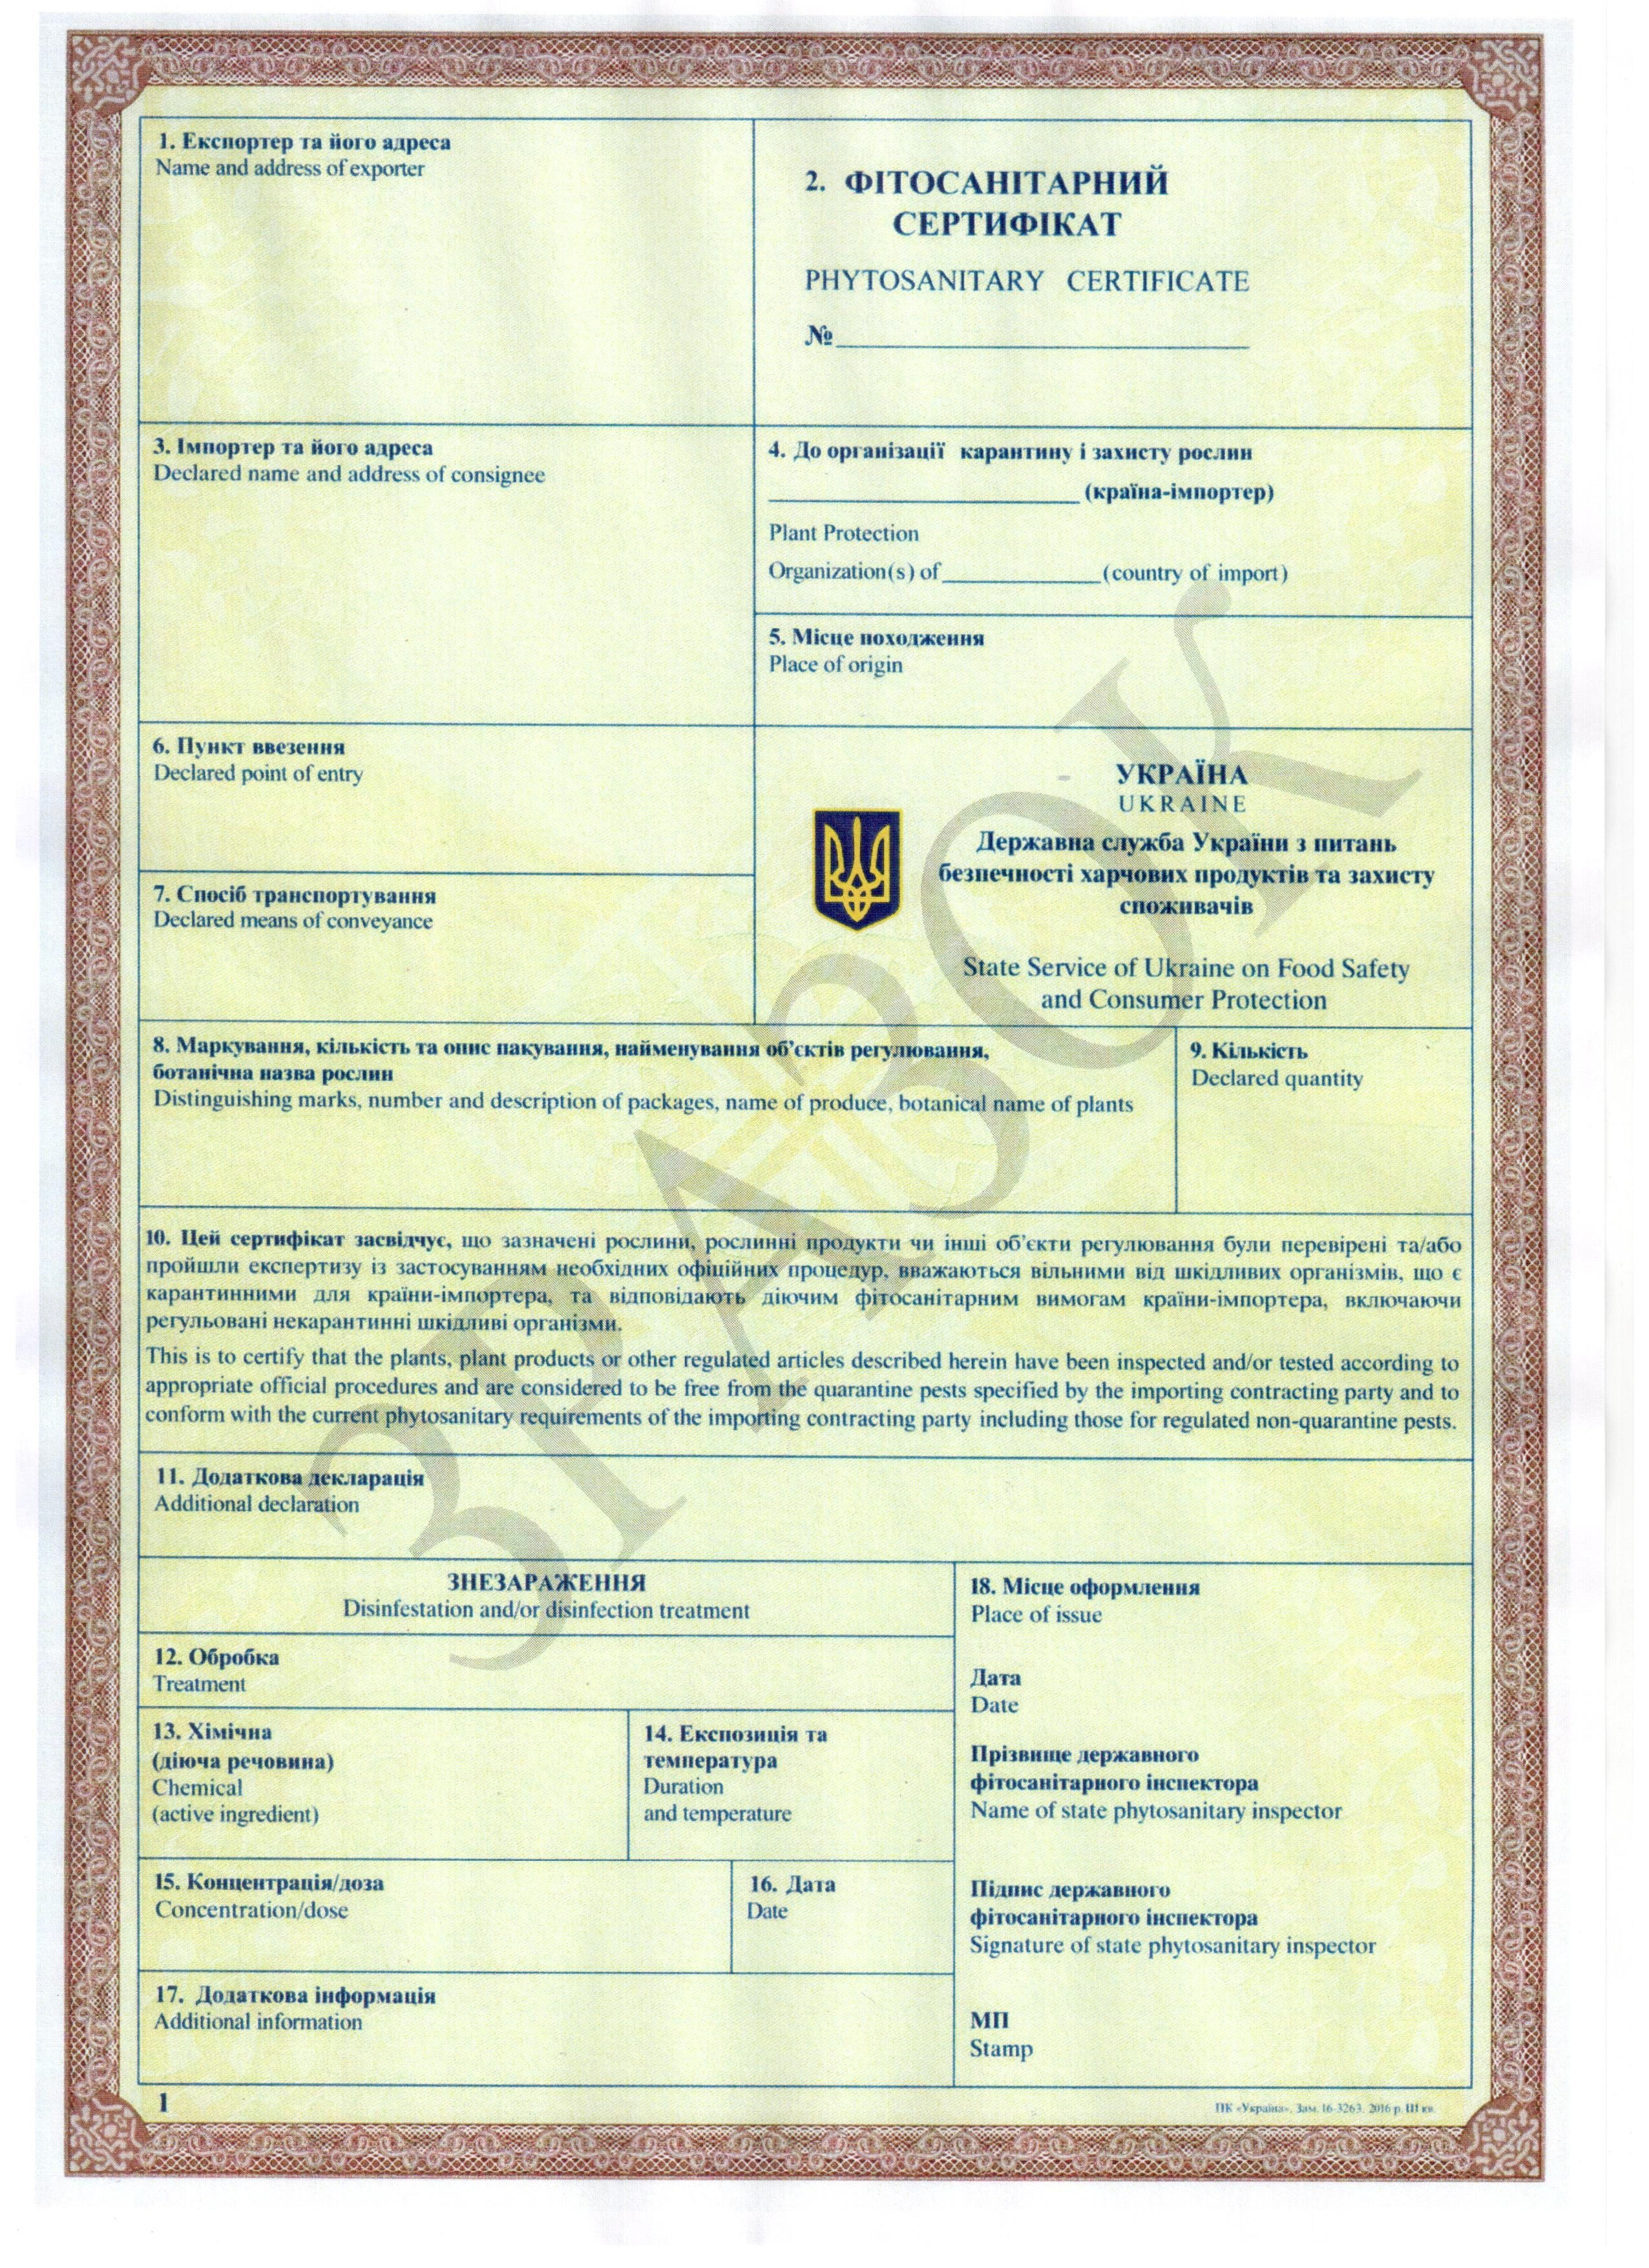 Reporting Obligations Ukraine International Plant Protection